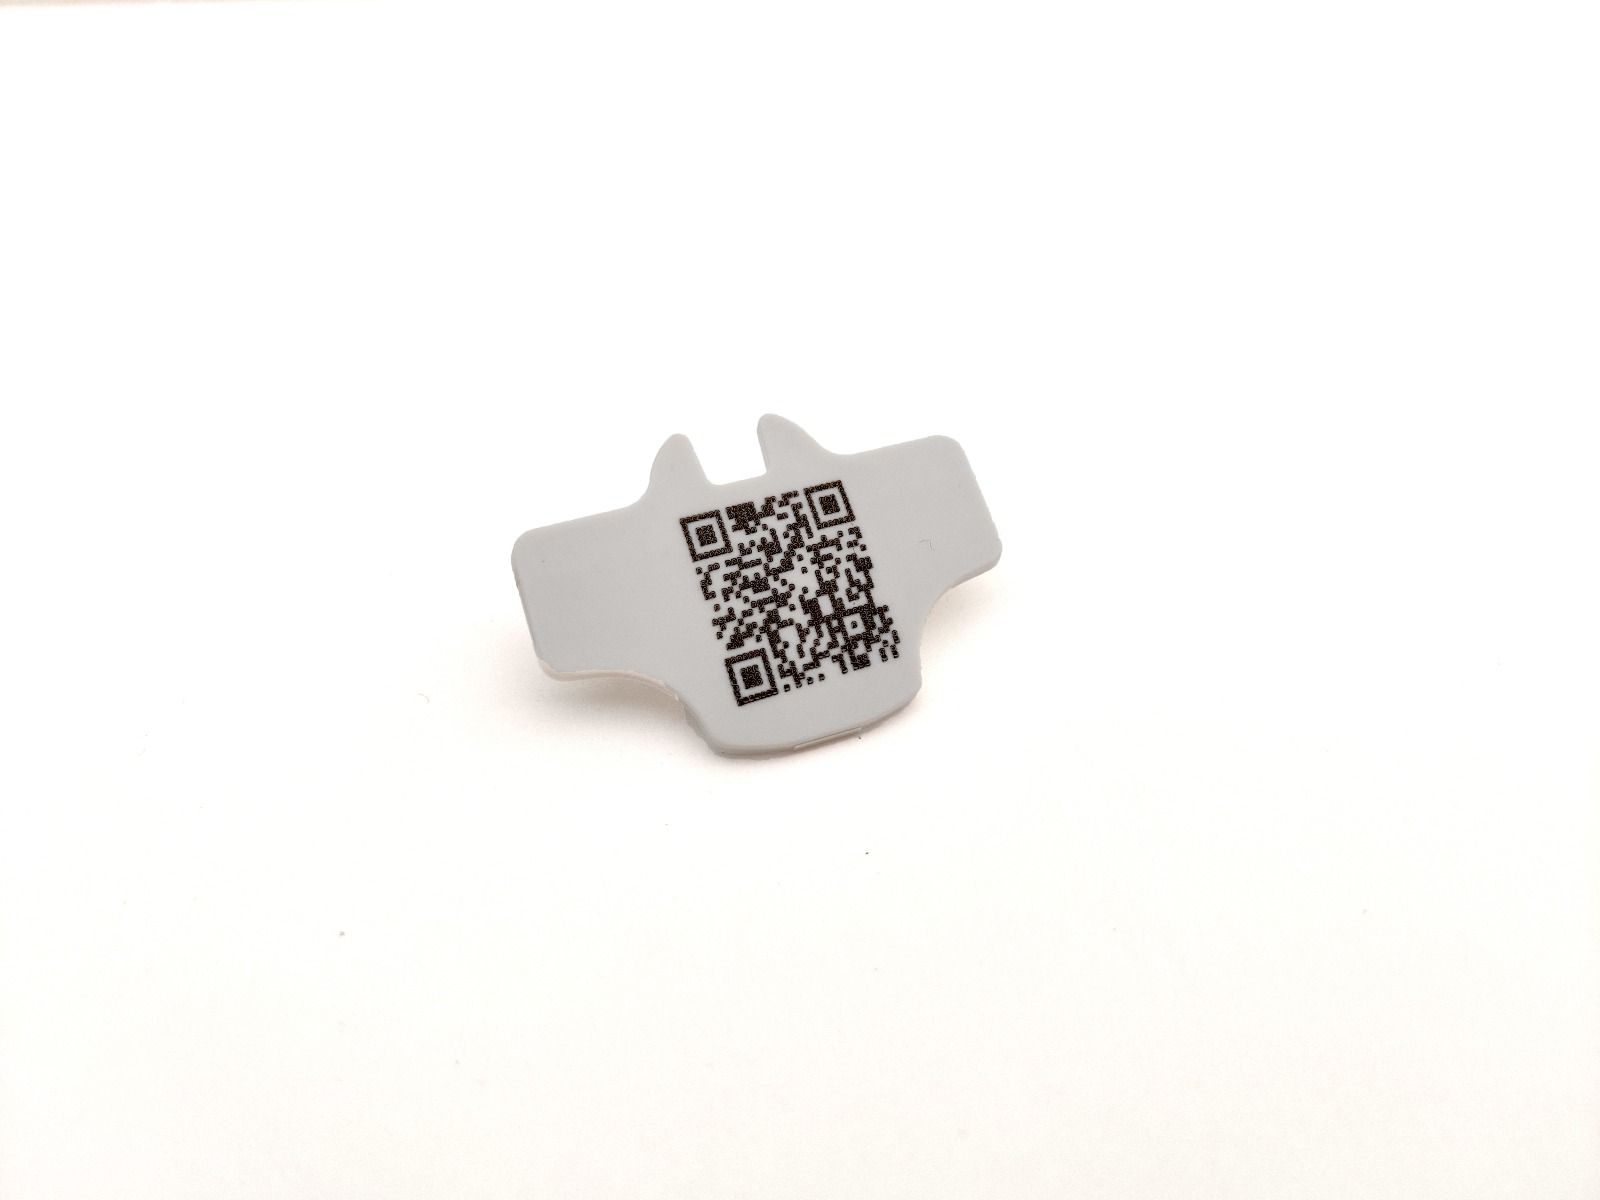 QR Code Printed T2 Tamper Evident Security Seals